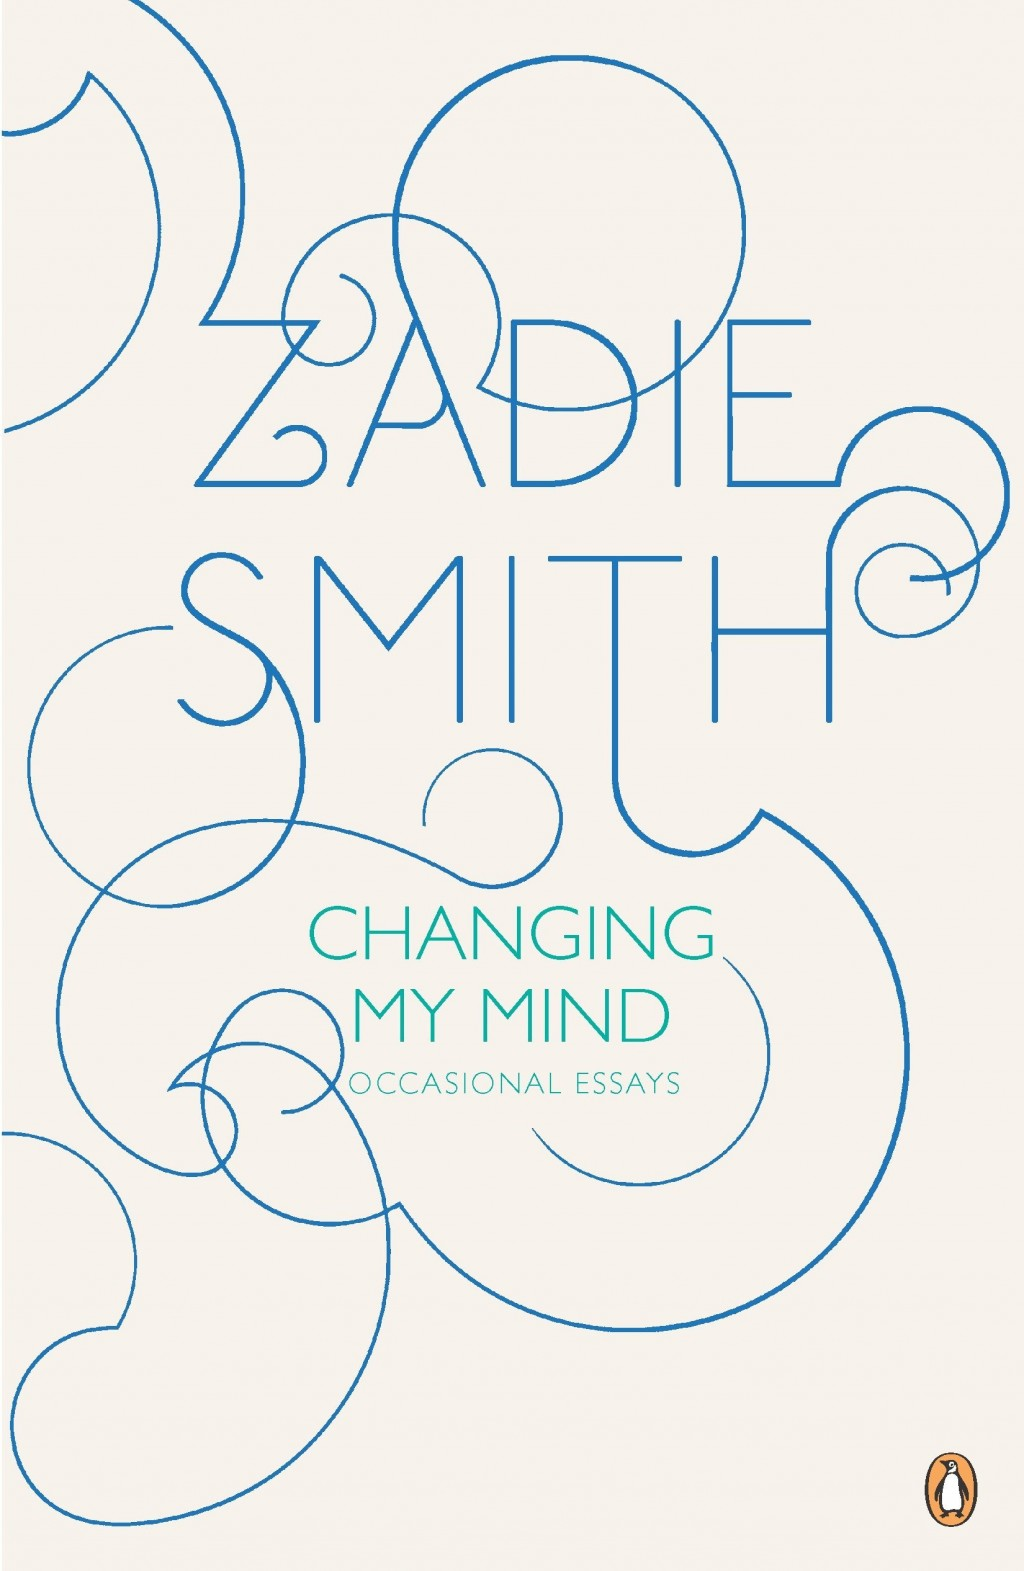 001 Essay Example Changing My Mind Occasional Essays Striking Pdf By Zadie Smith Large